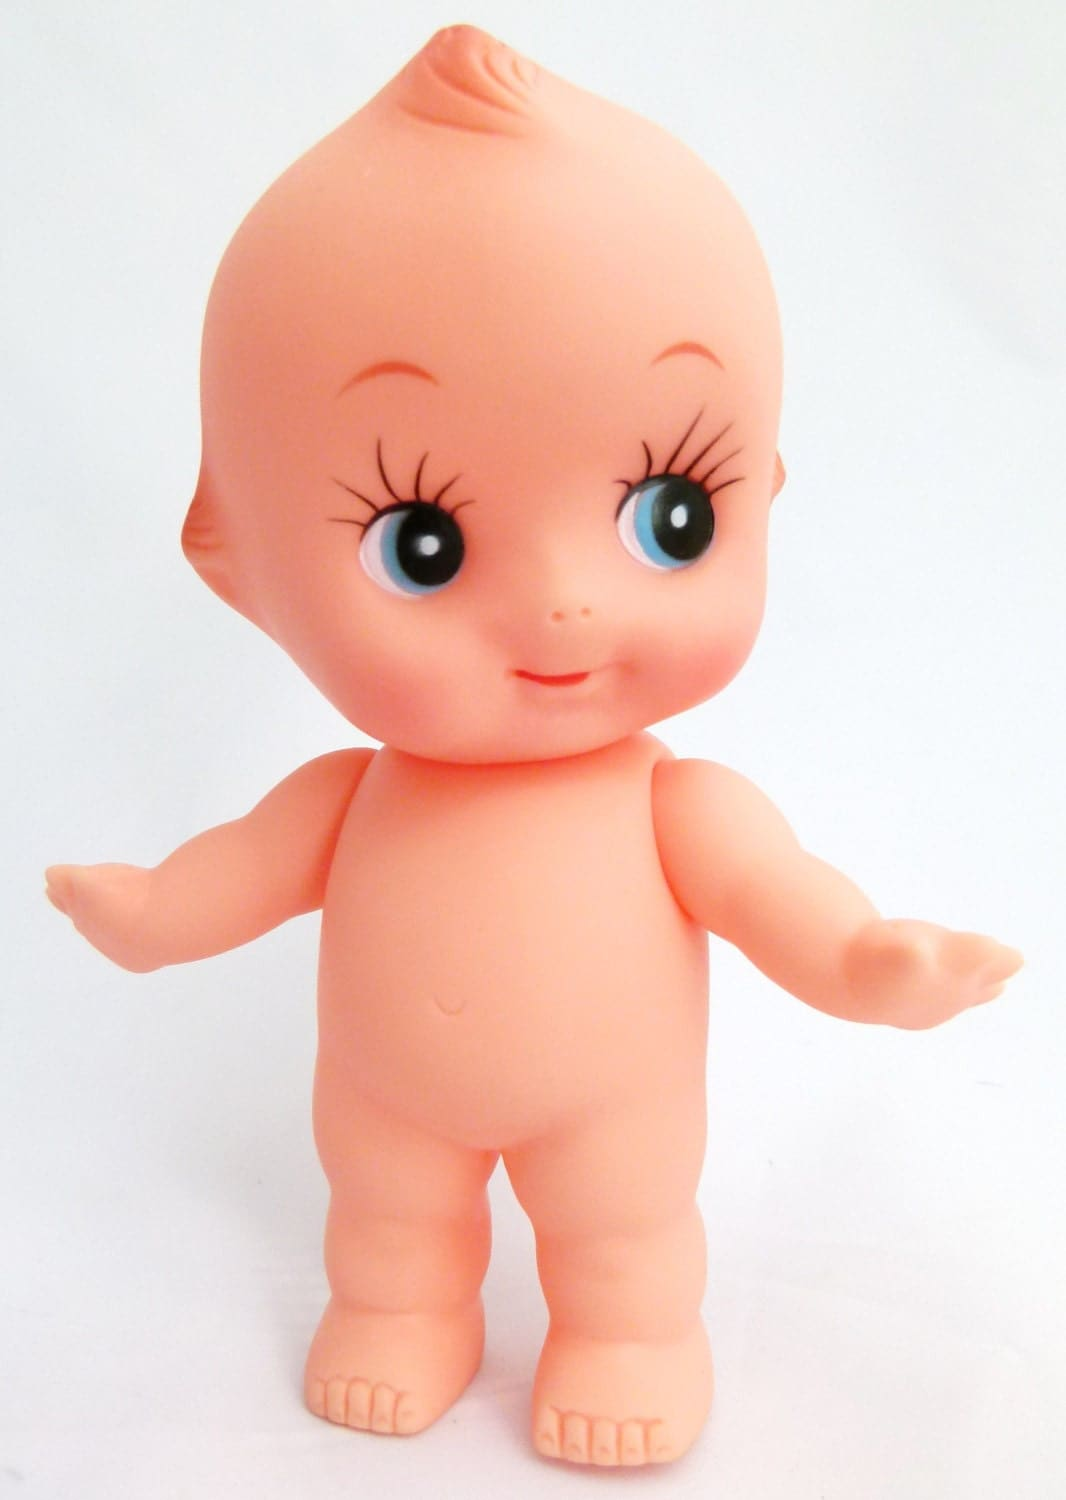 We Have A Winnah Give That Man Kewpie Doll Icecougar